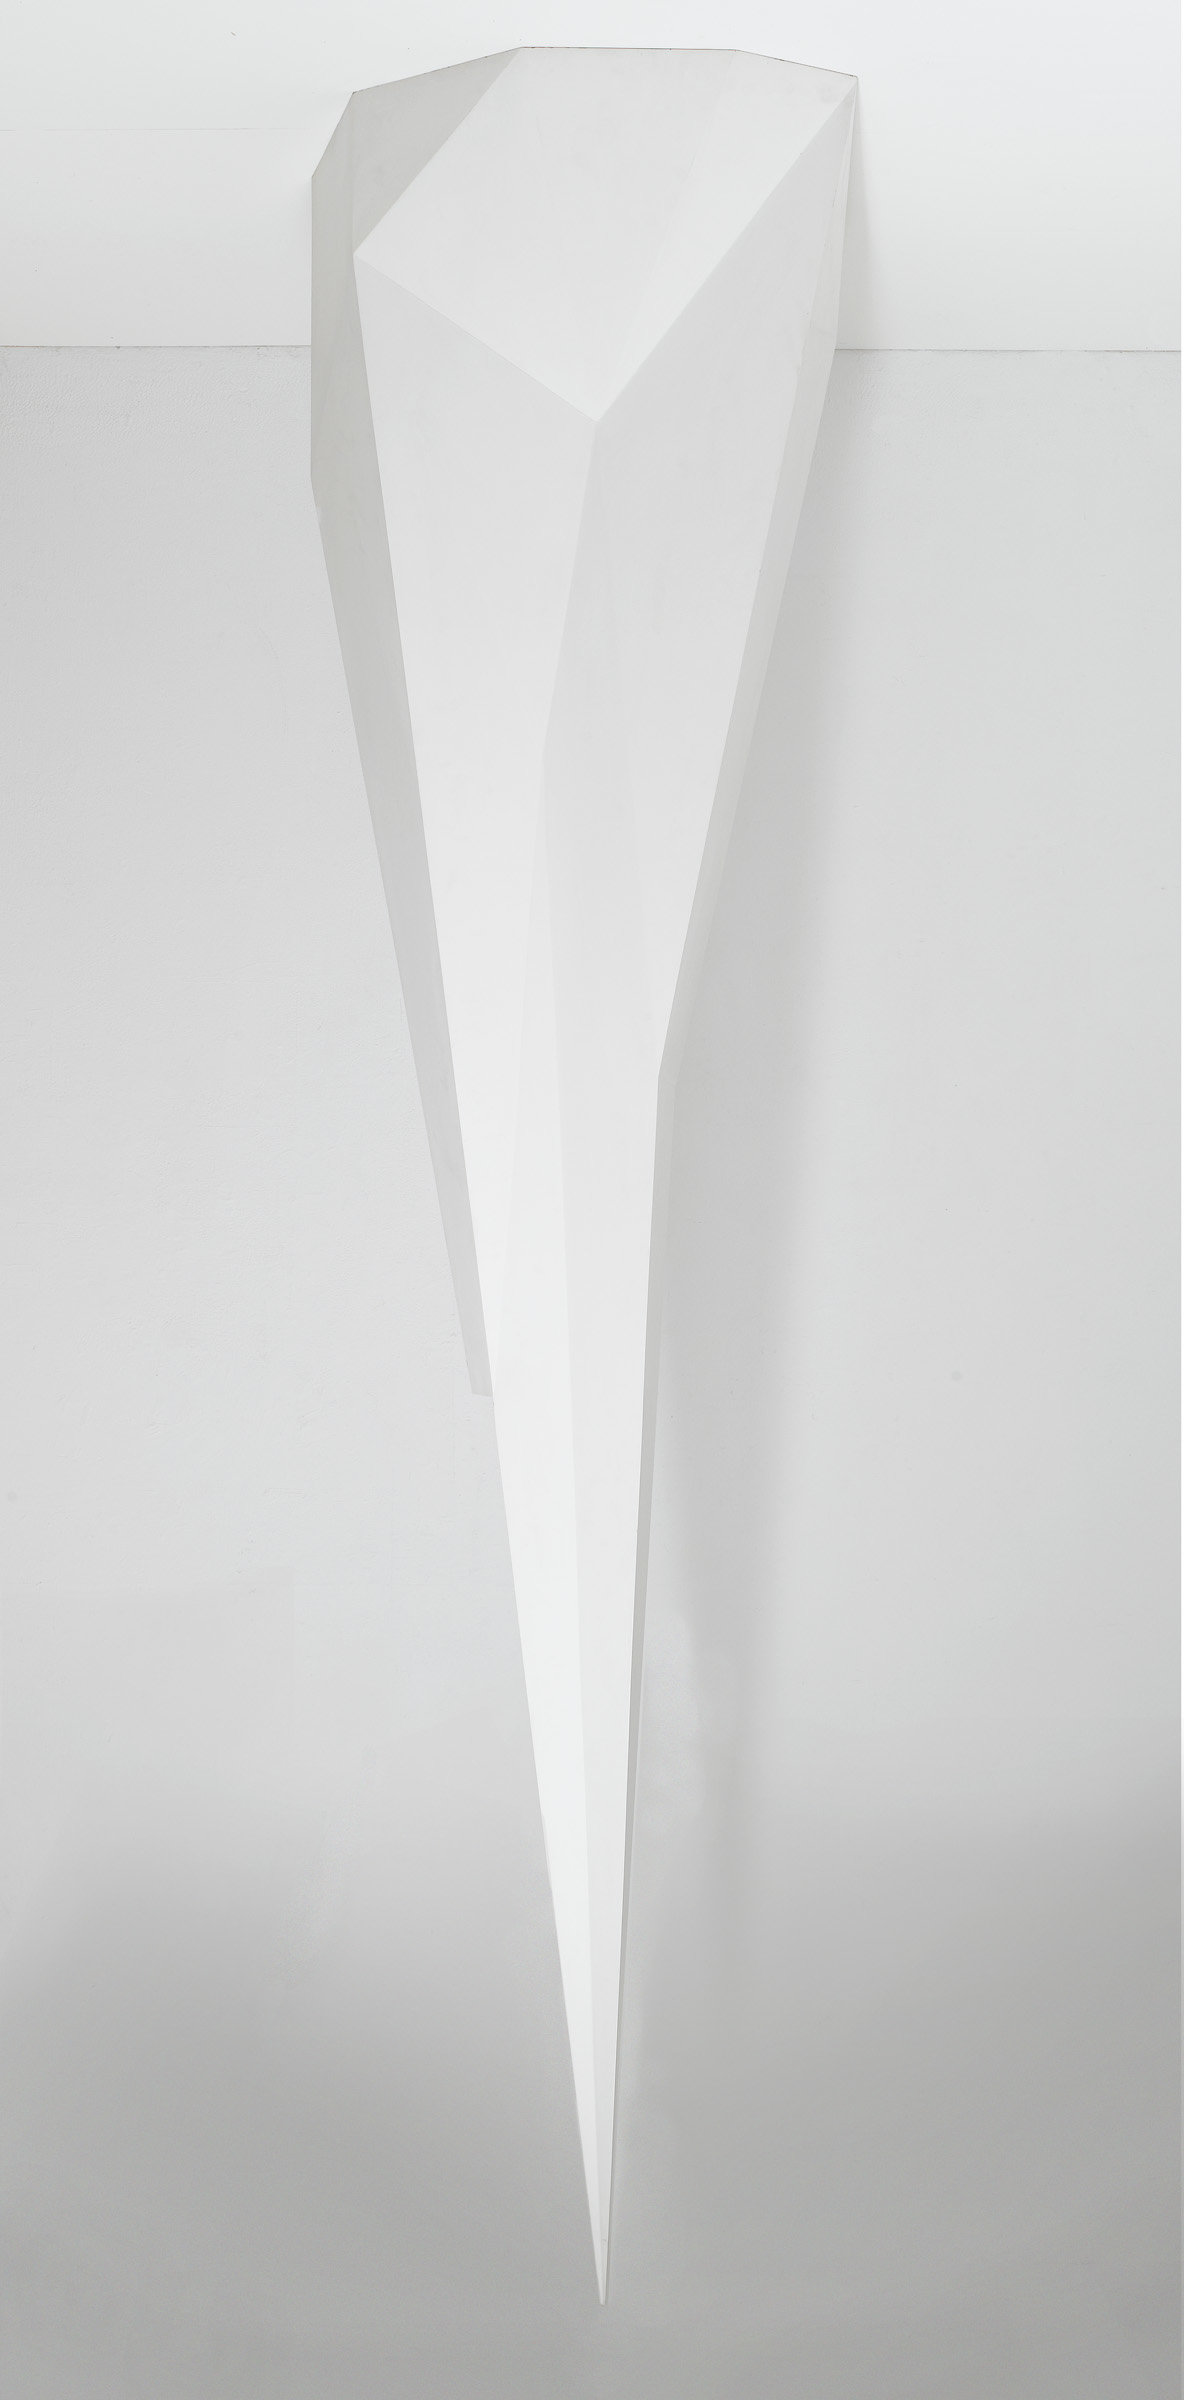 ", 1989. Painted wood, 11&apos; 6"" x 3&apos; 4"" x 2&apos; 11"" (350.5 cm x 101.6 cm x 88.9 cm)."